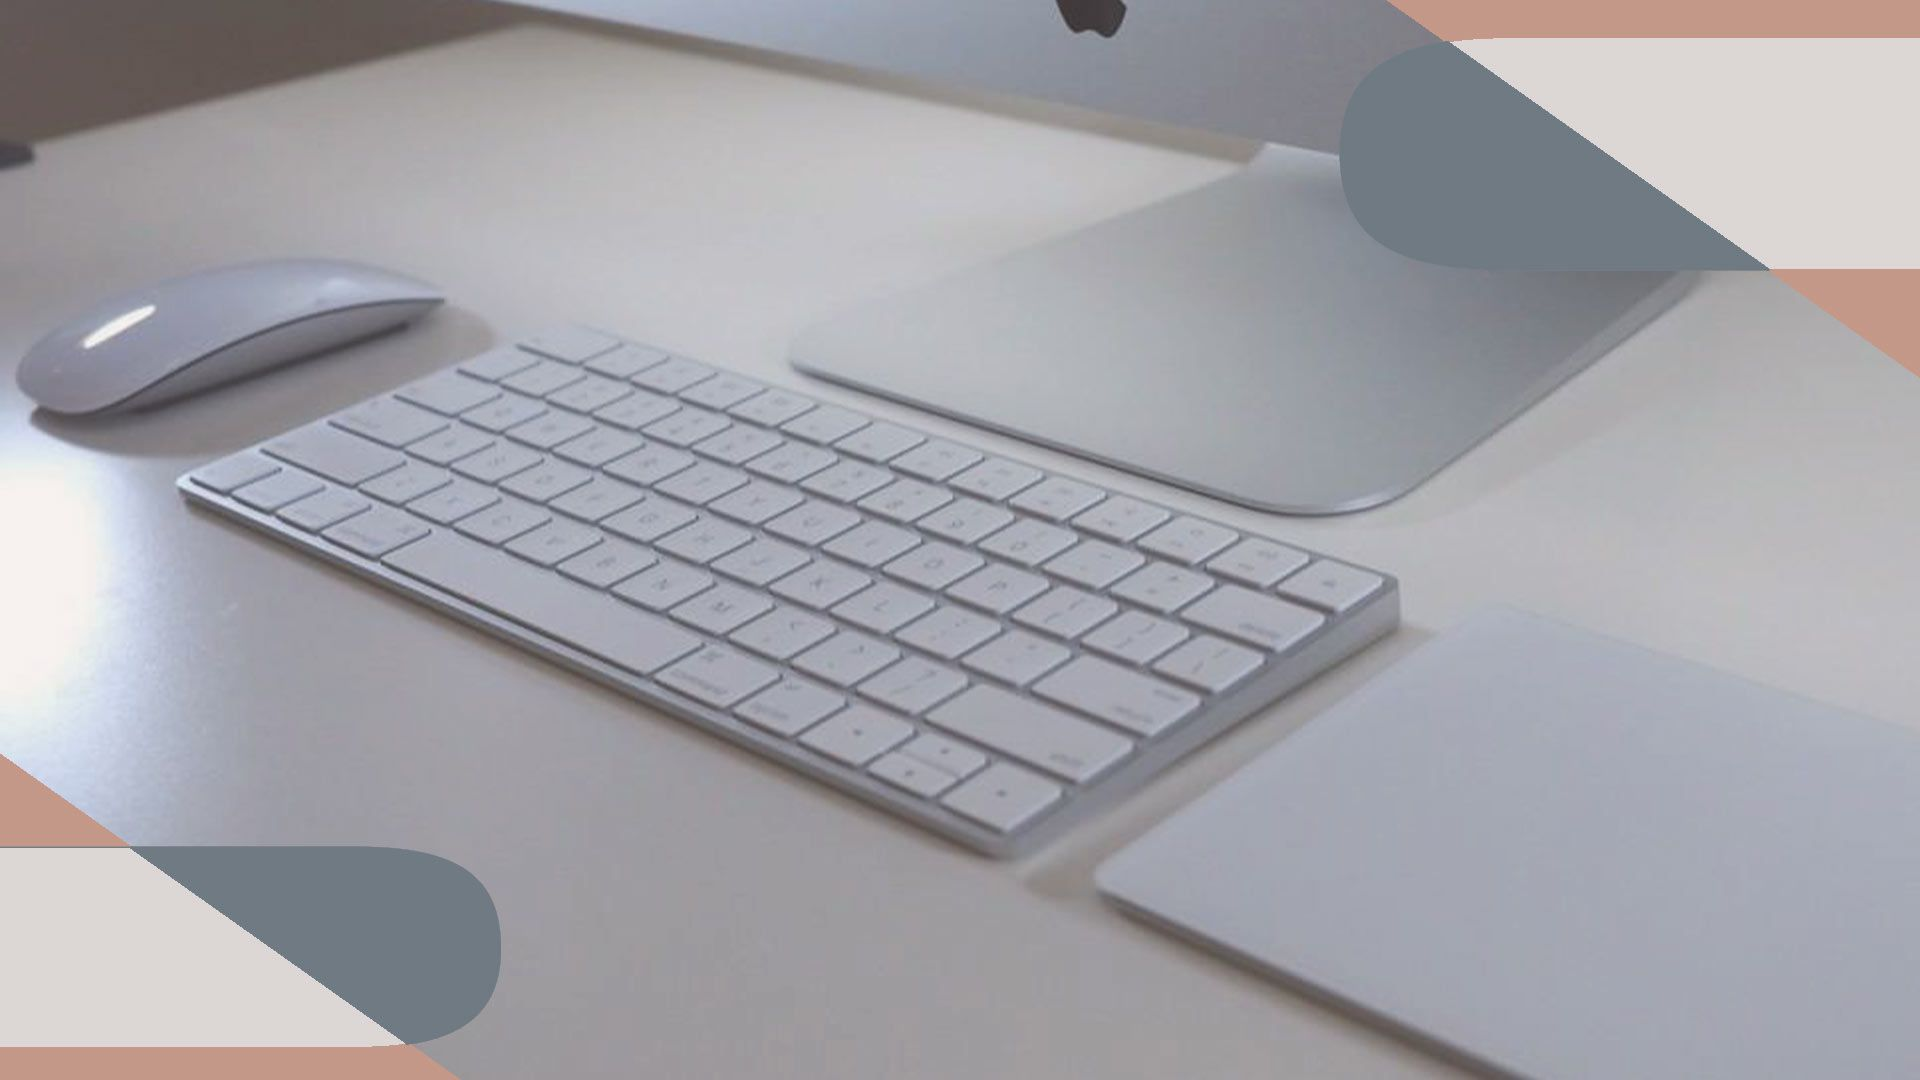 Apple's wireless Magic Keyboard ($94)